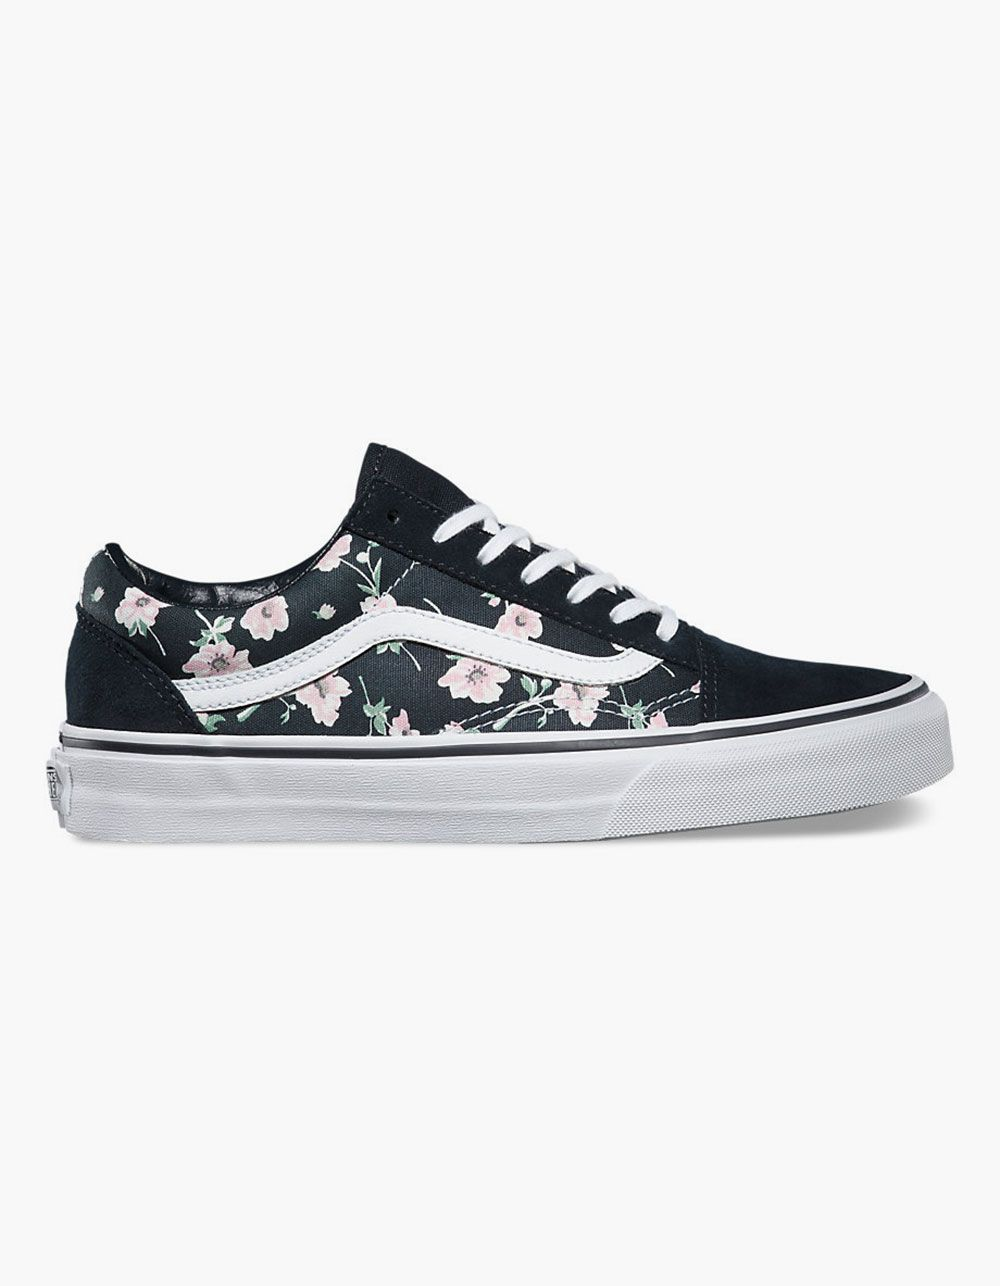 VANS Vintage Floral Old Skool Womens Shoes 261809957  b4b63784d